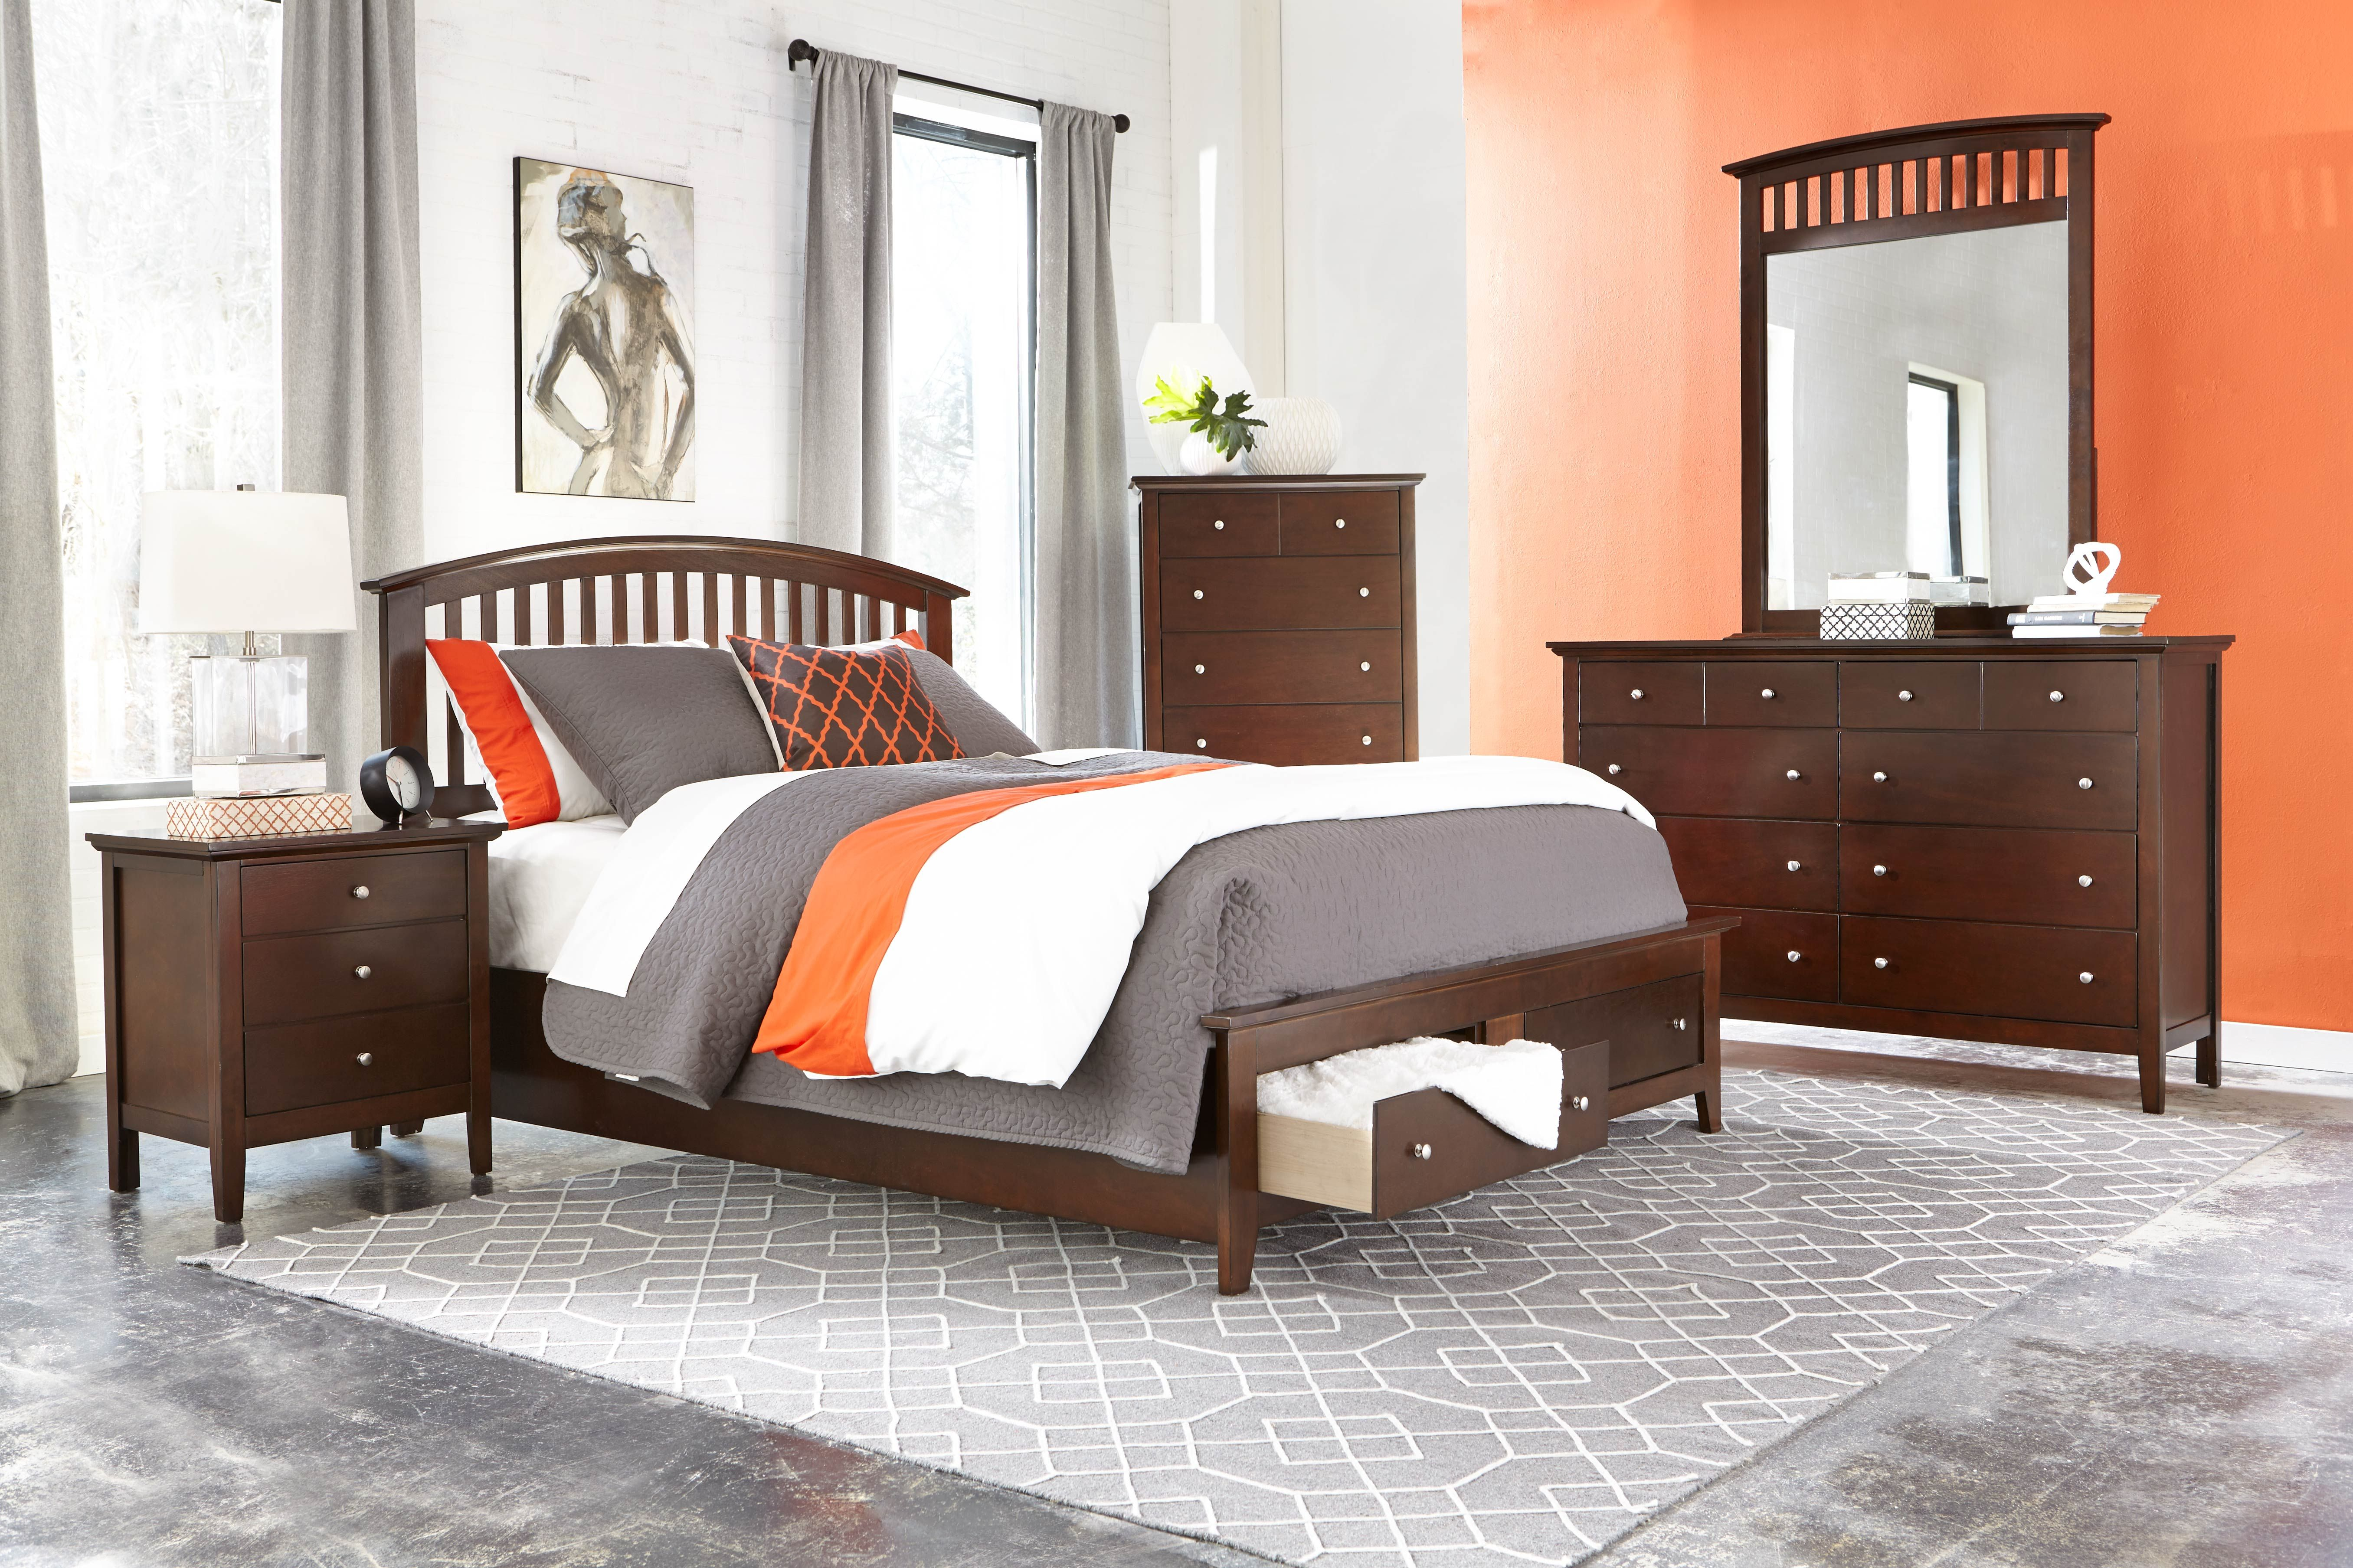 Pin by Louisville Furniture on Bedroom Furniture Bedroom